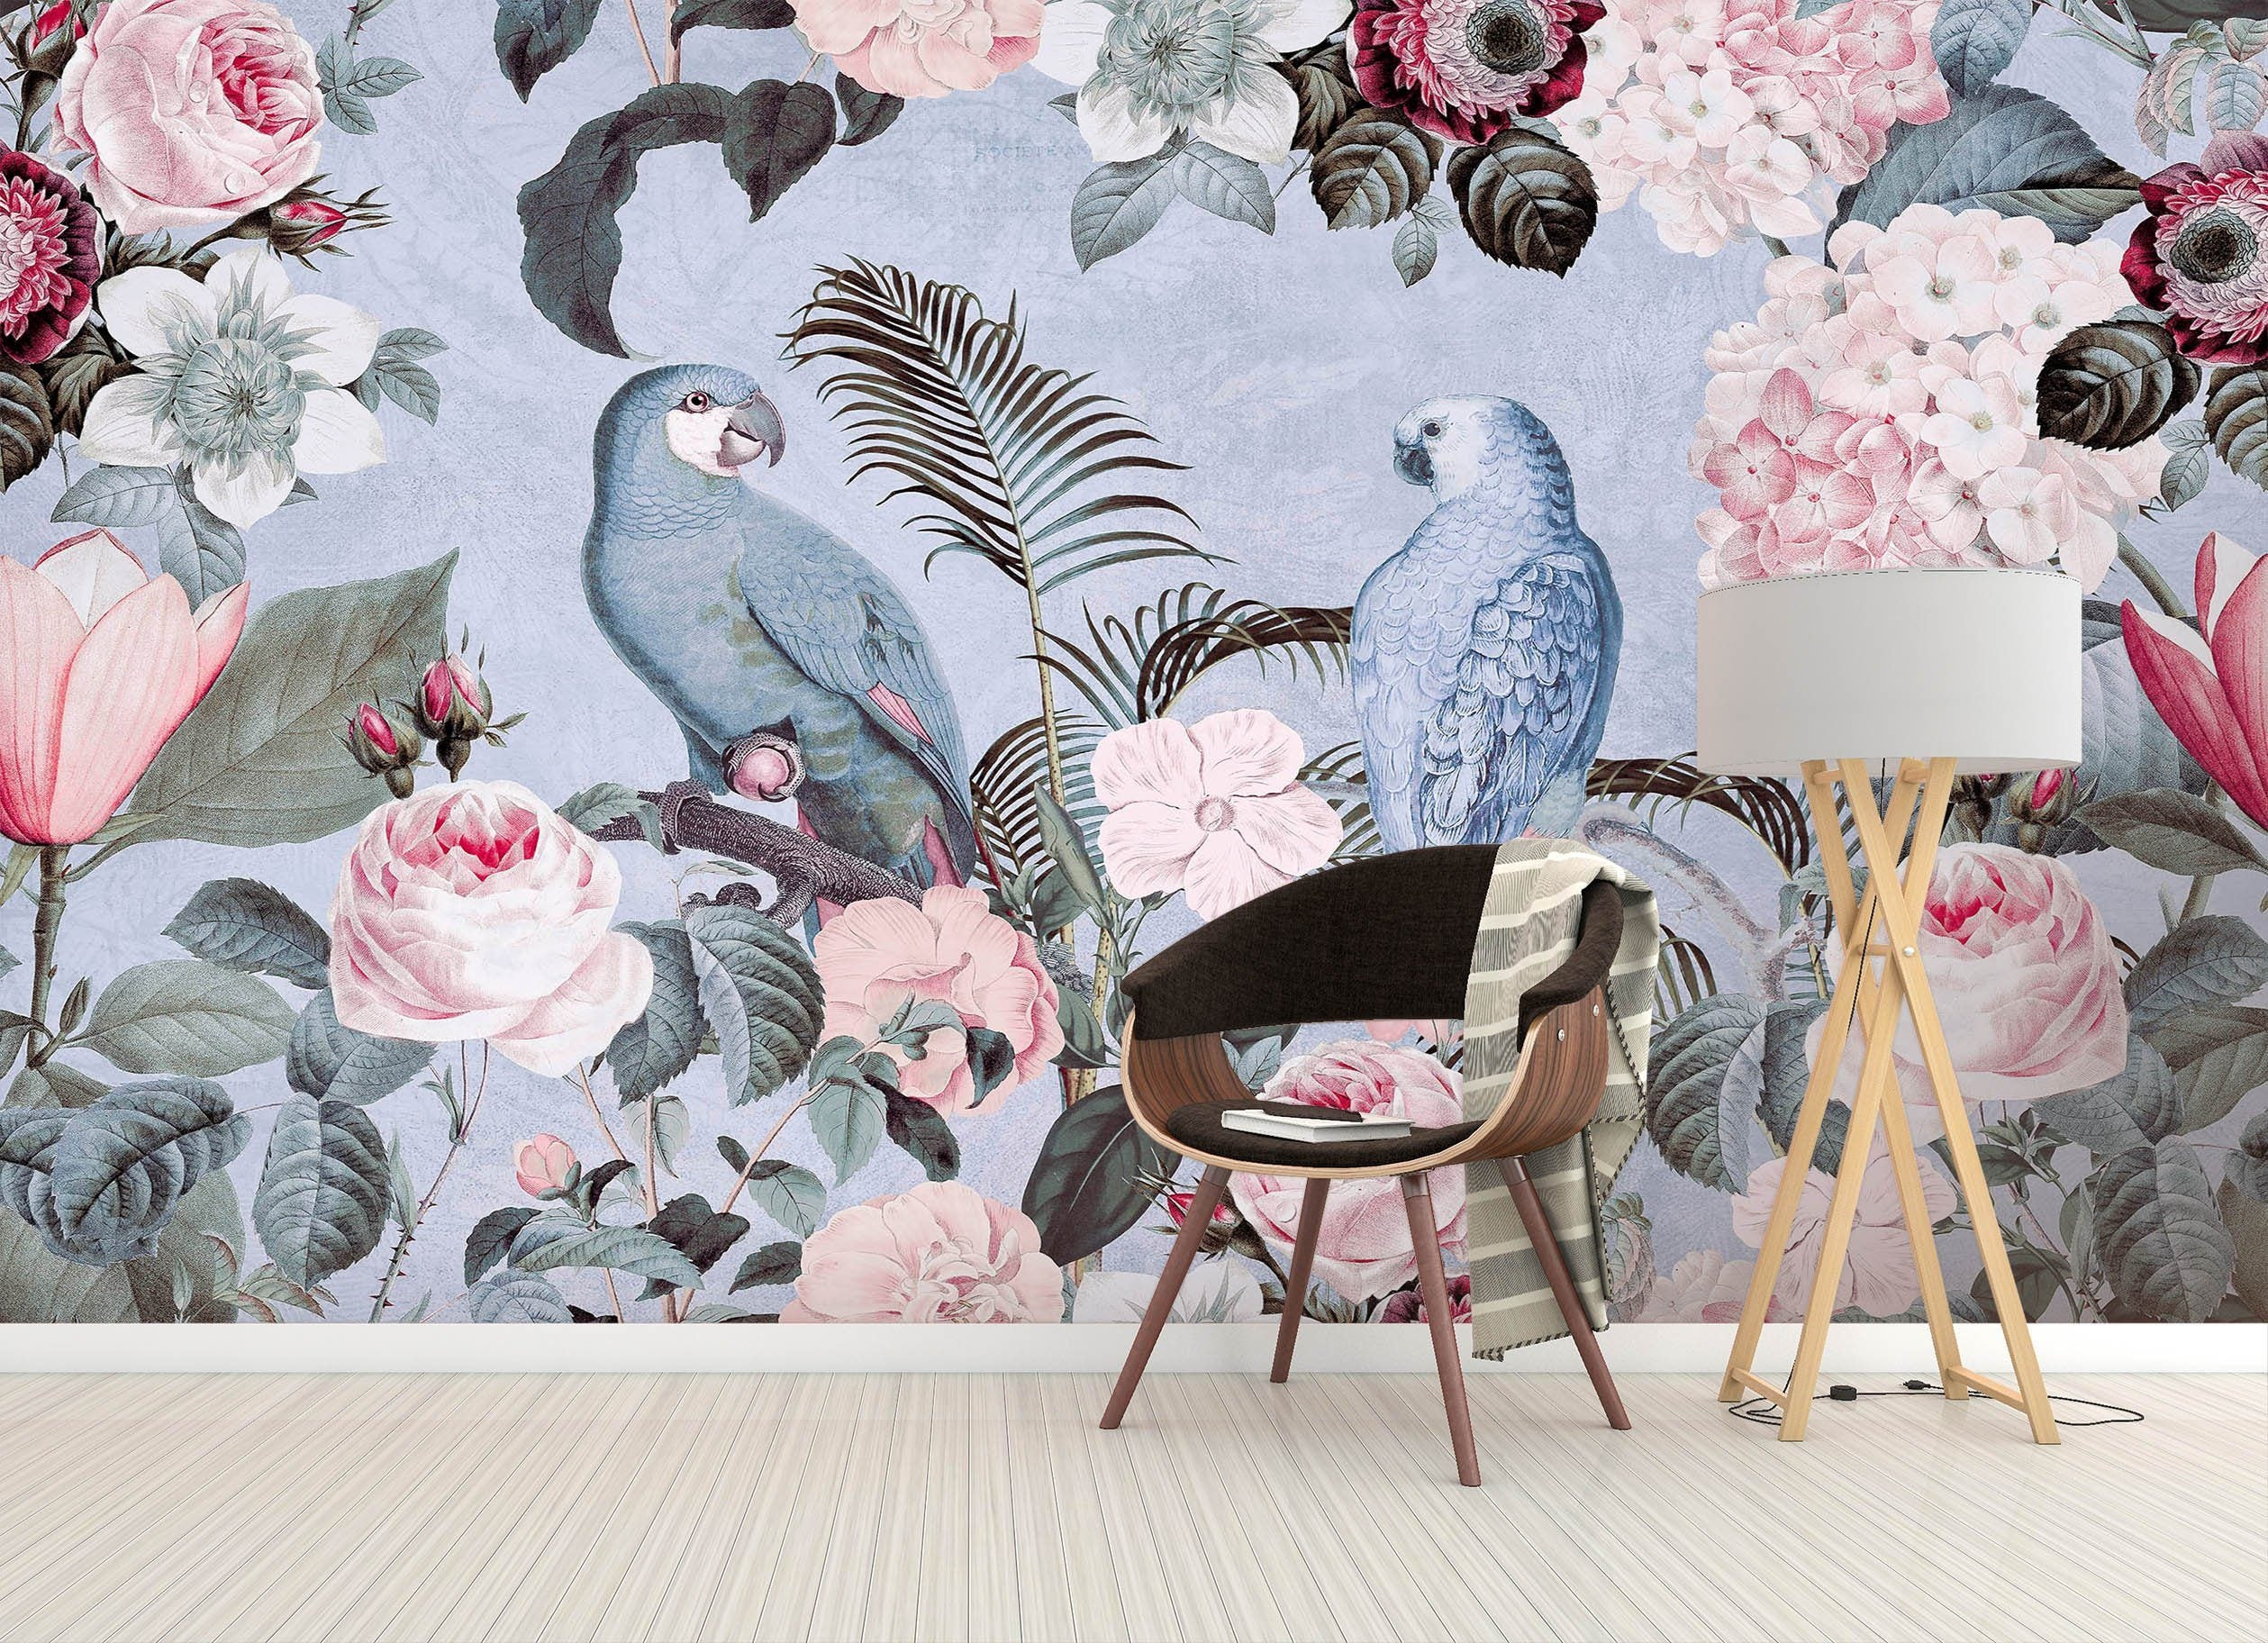 3D Bird Flowers 1421 Andrea haase Wall Mural Wall Murals Wallpaper AJ Wallpaper 2